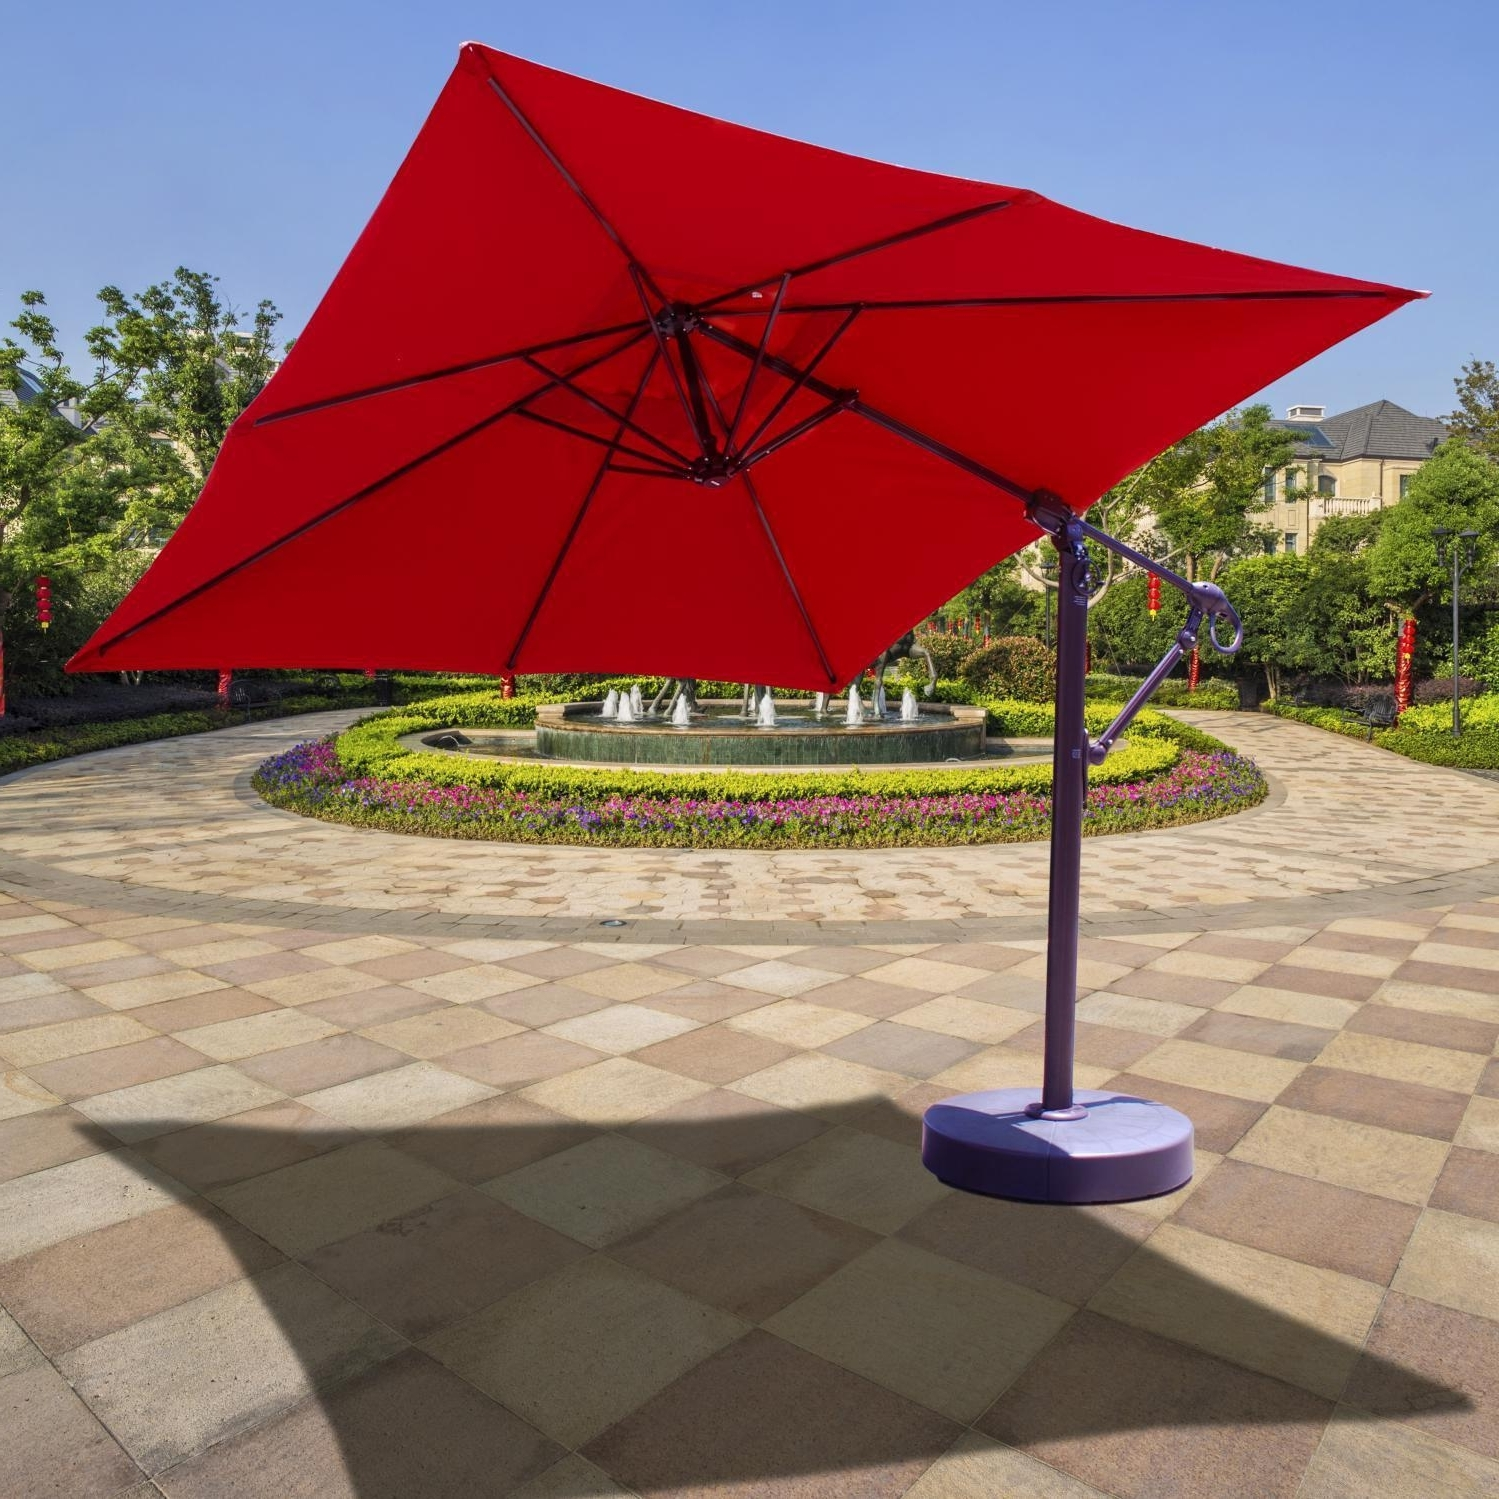 Most Recently Released Galtech 10 Ft Aluminum Square Cantilever Patio Umbrella With Easy With Square Cantilever Patio Umbrellas (View 6 of 20)